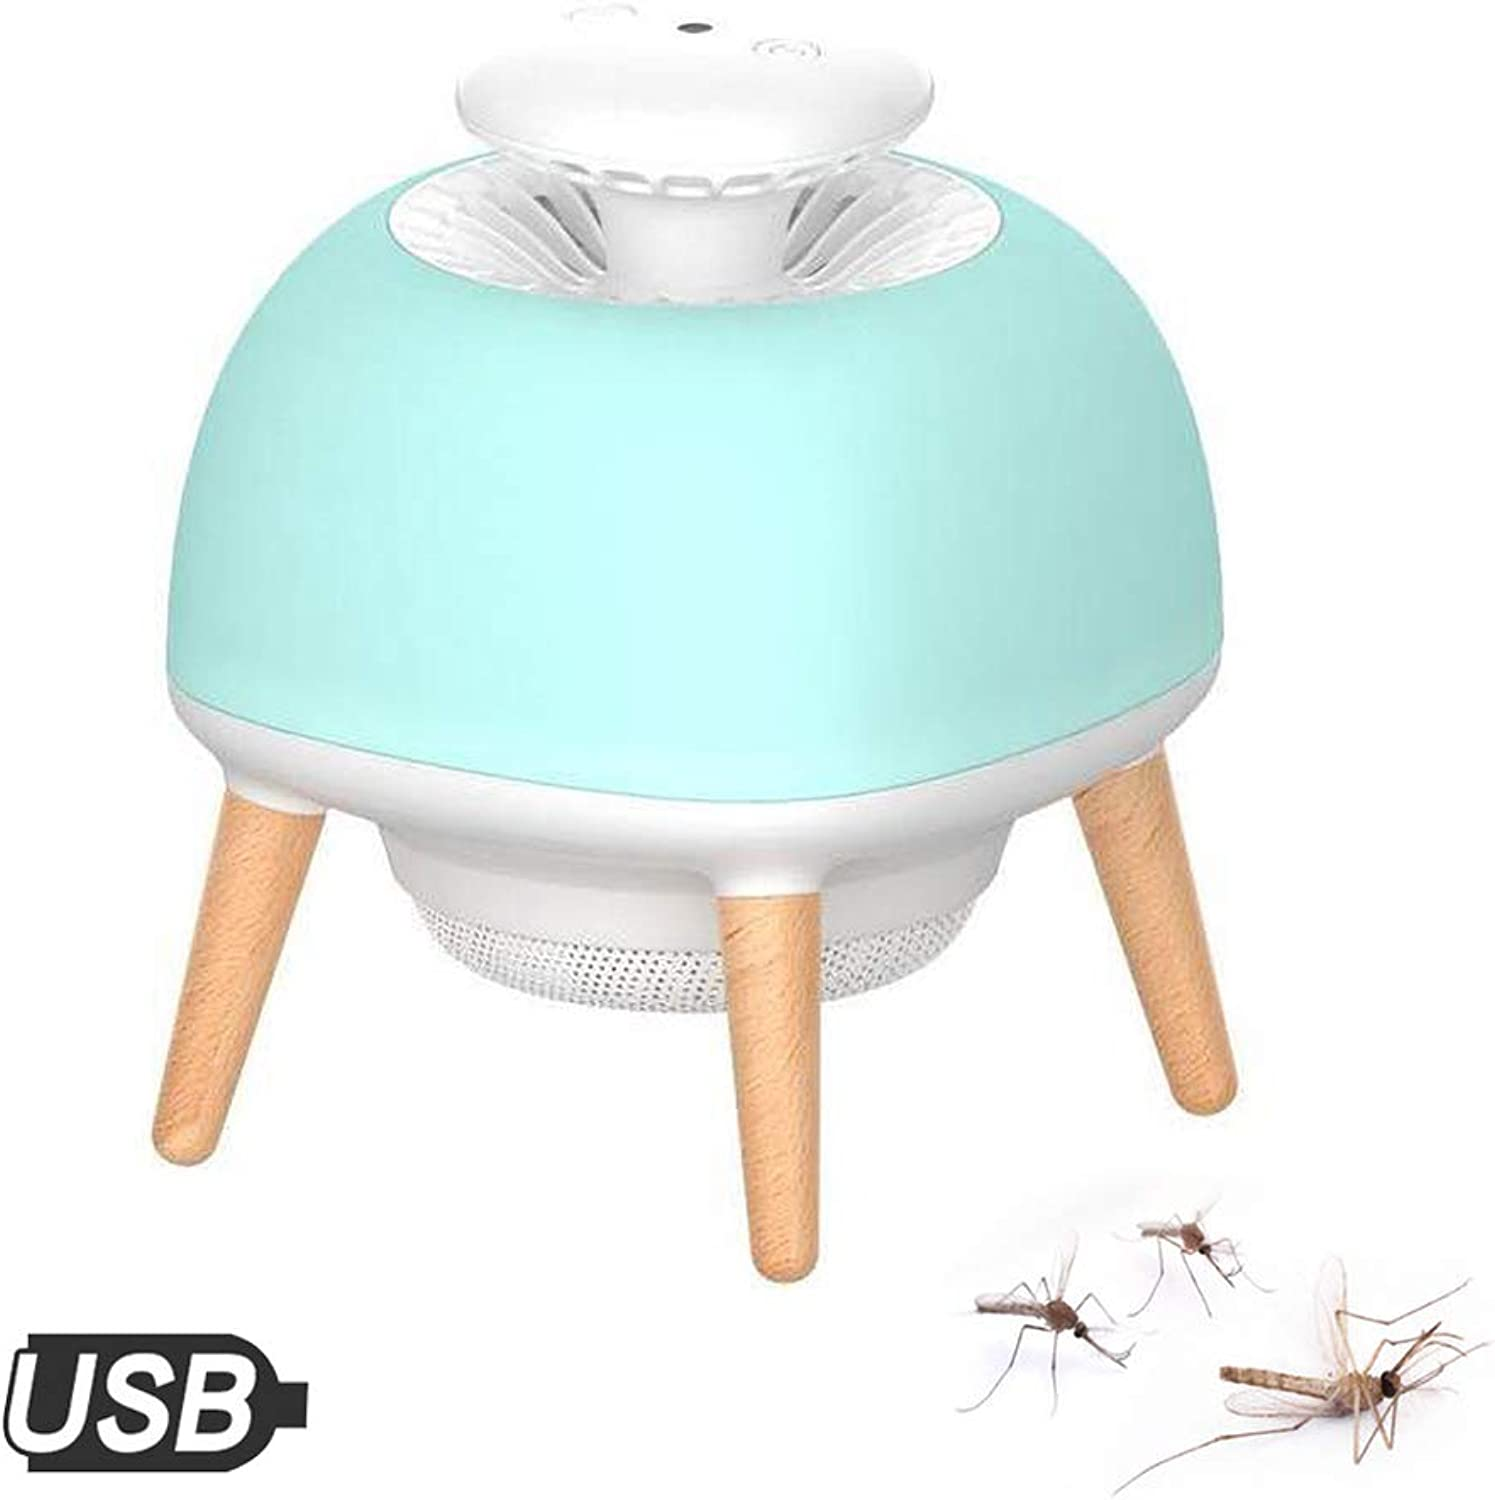 3 in 1 Mosquito Killer Lamp USB,LED Night Light,Insect Suction Trap,for Indoor,Outdoor, Home,Kitchen,Office,Green